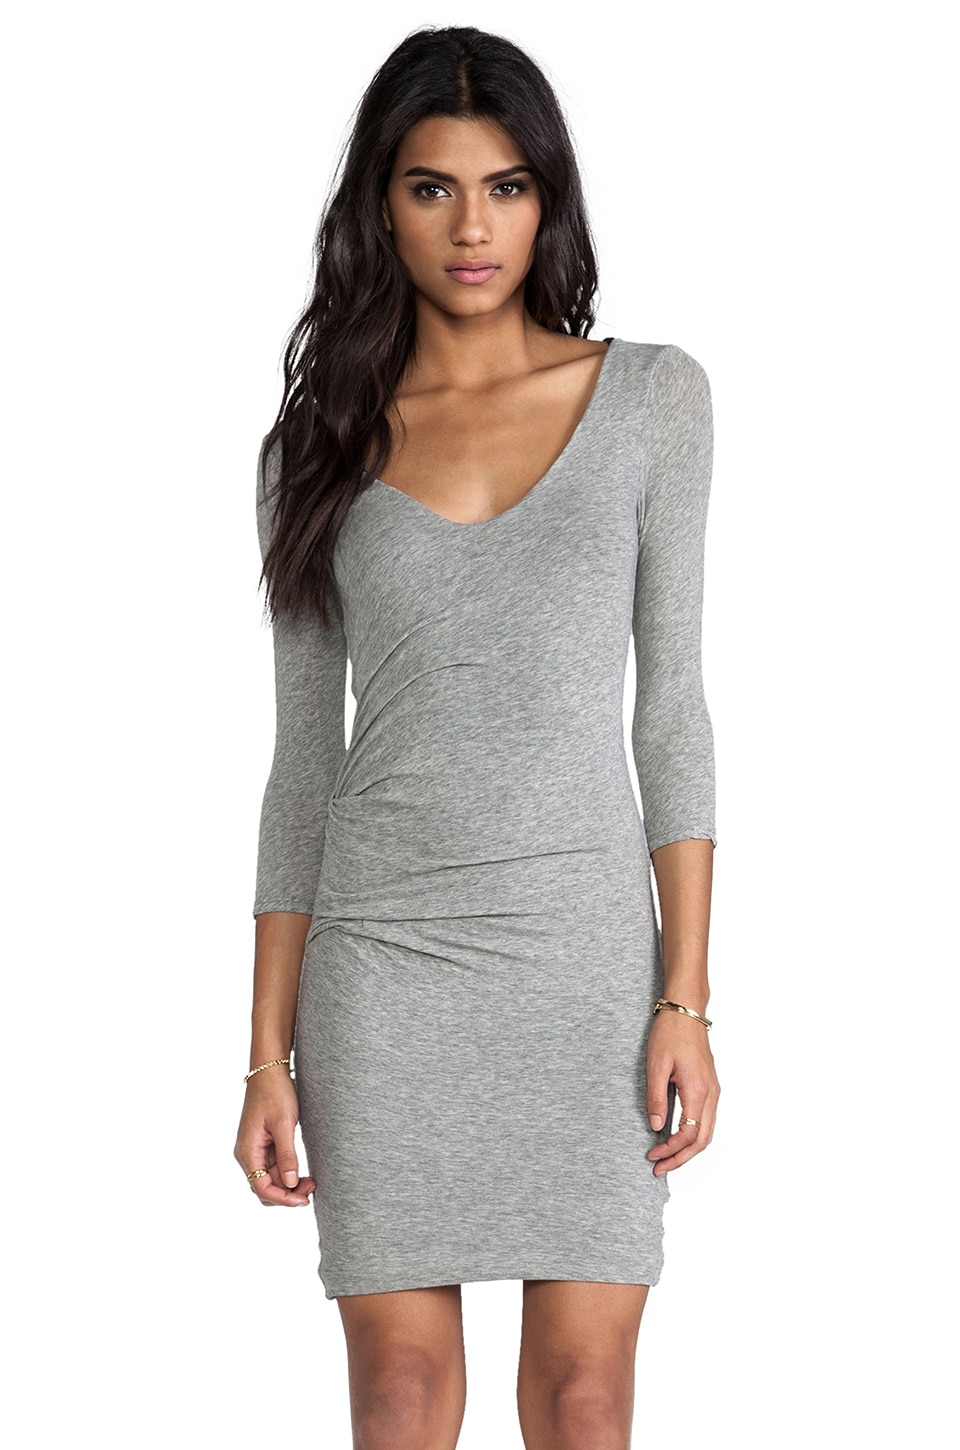 James Perse V Neck Tuck Dress in Heather Grey & Charcoal